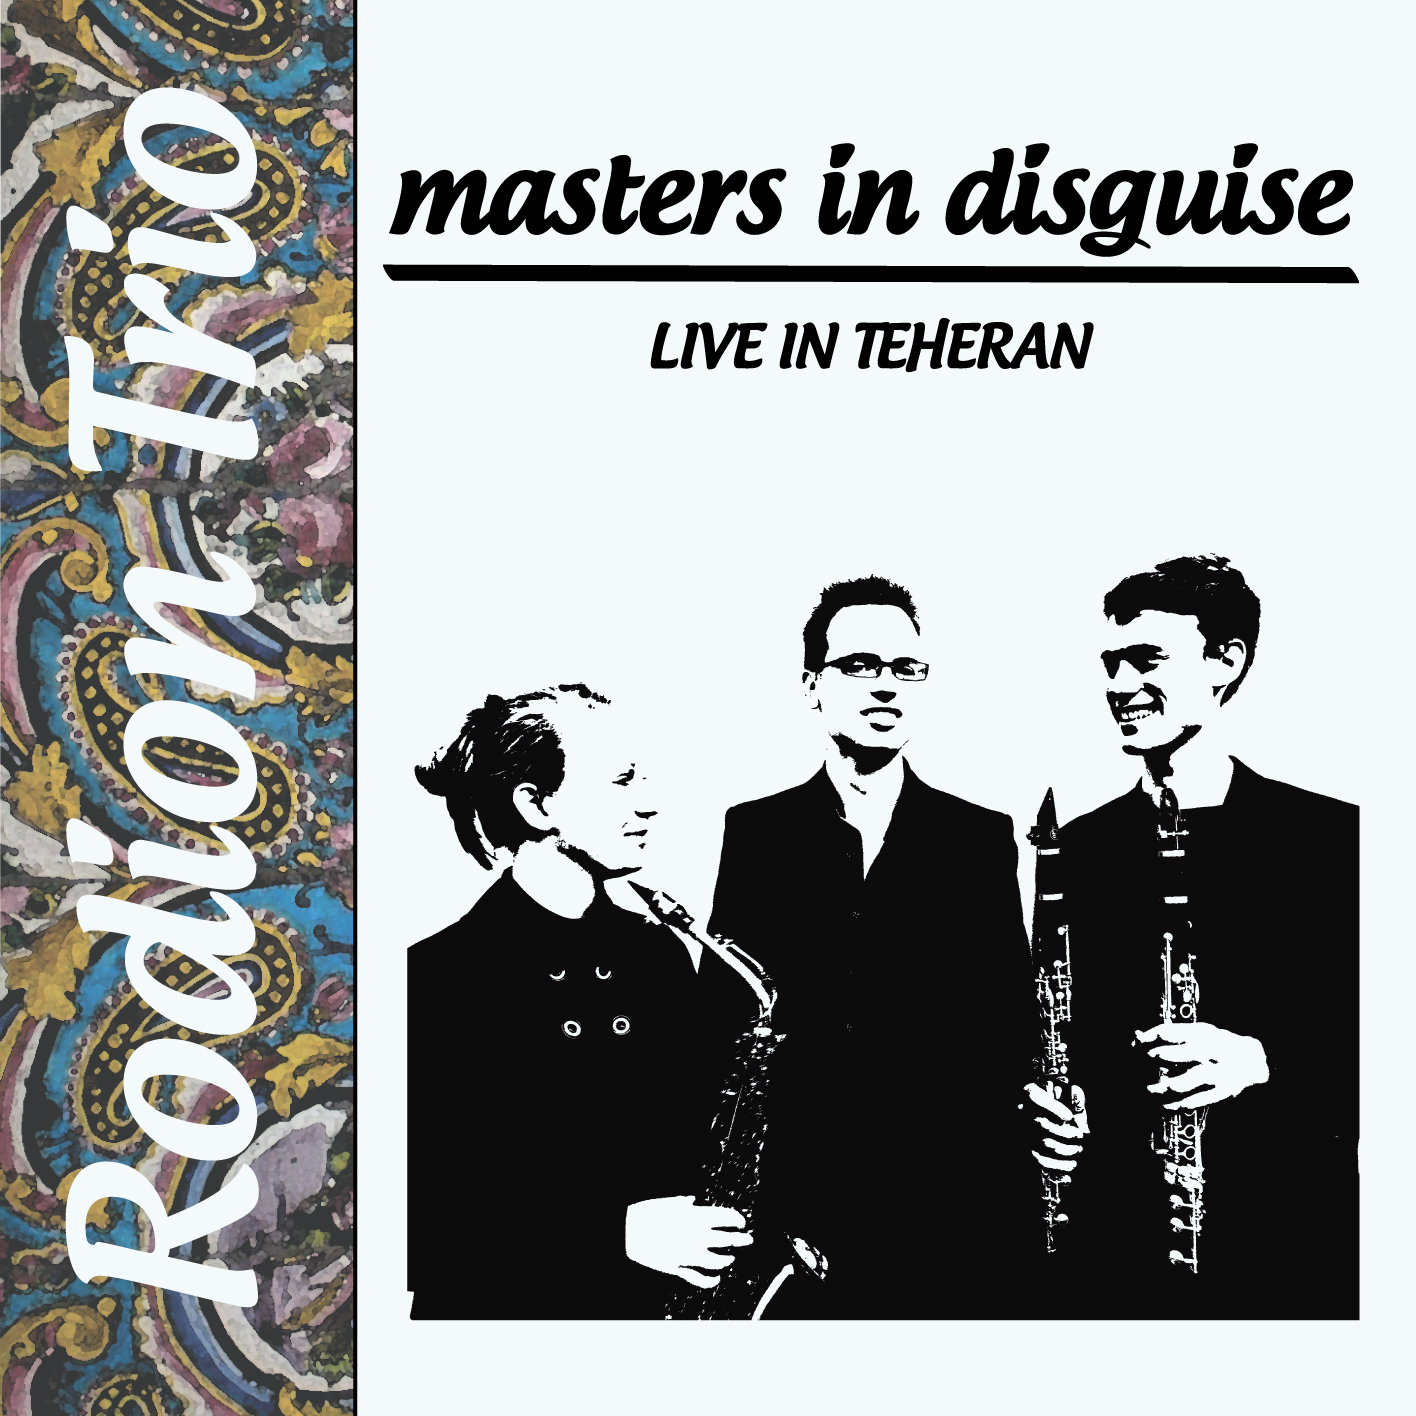 Masters in disguise Rodion Trio